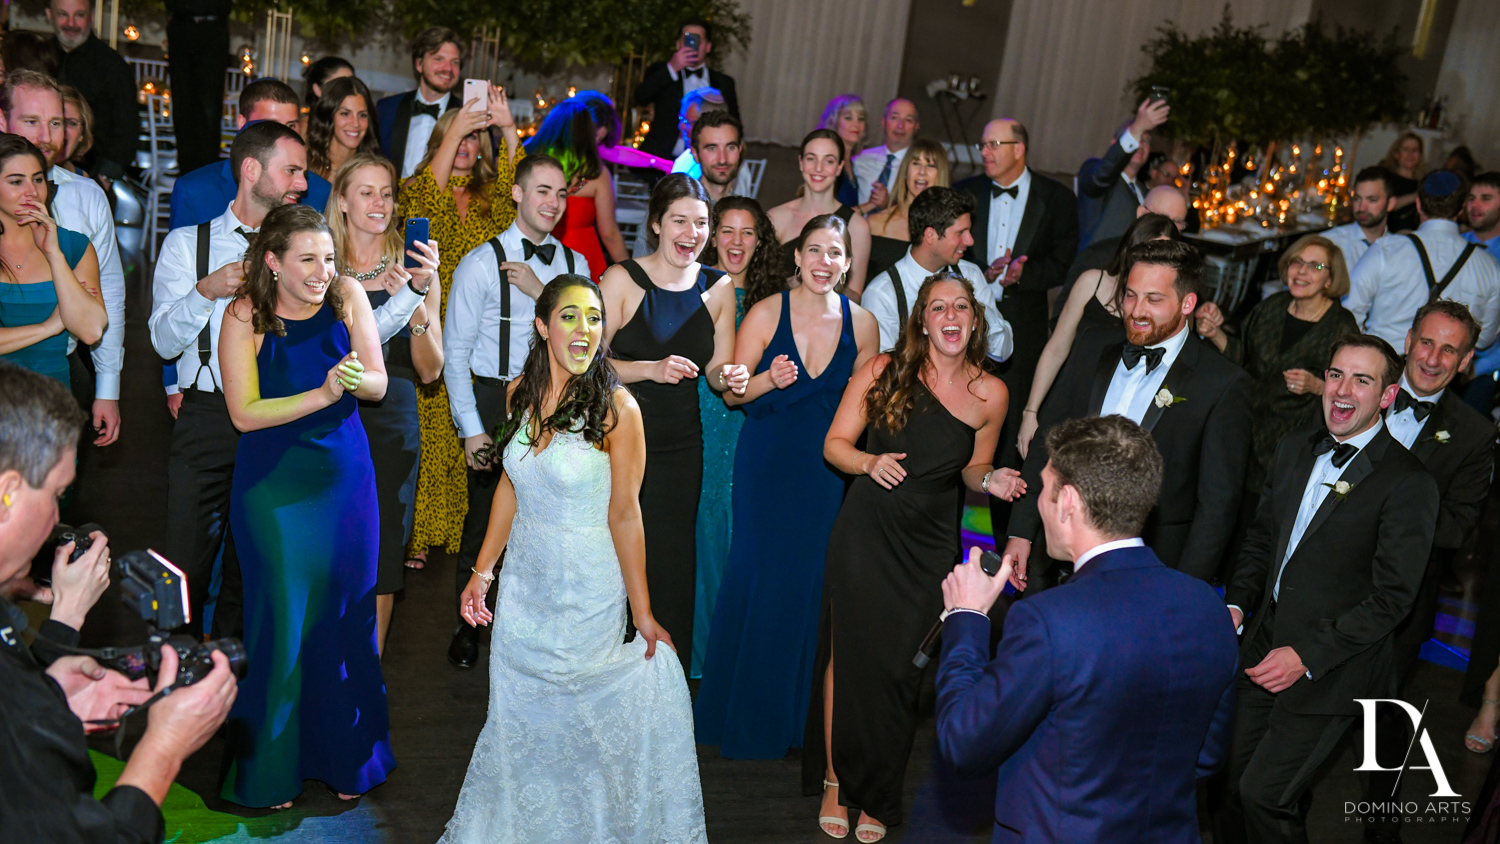 party fun at Classic Miami Beach Wedding at Temple Emanu-El and Emanuel Luxury Venue by Domino Arts Photography